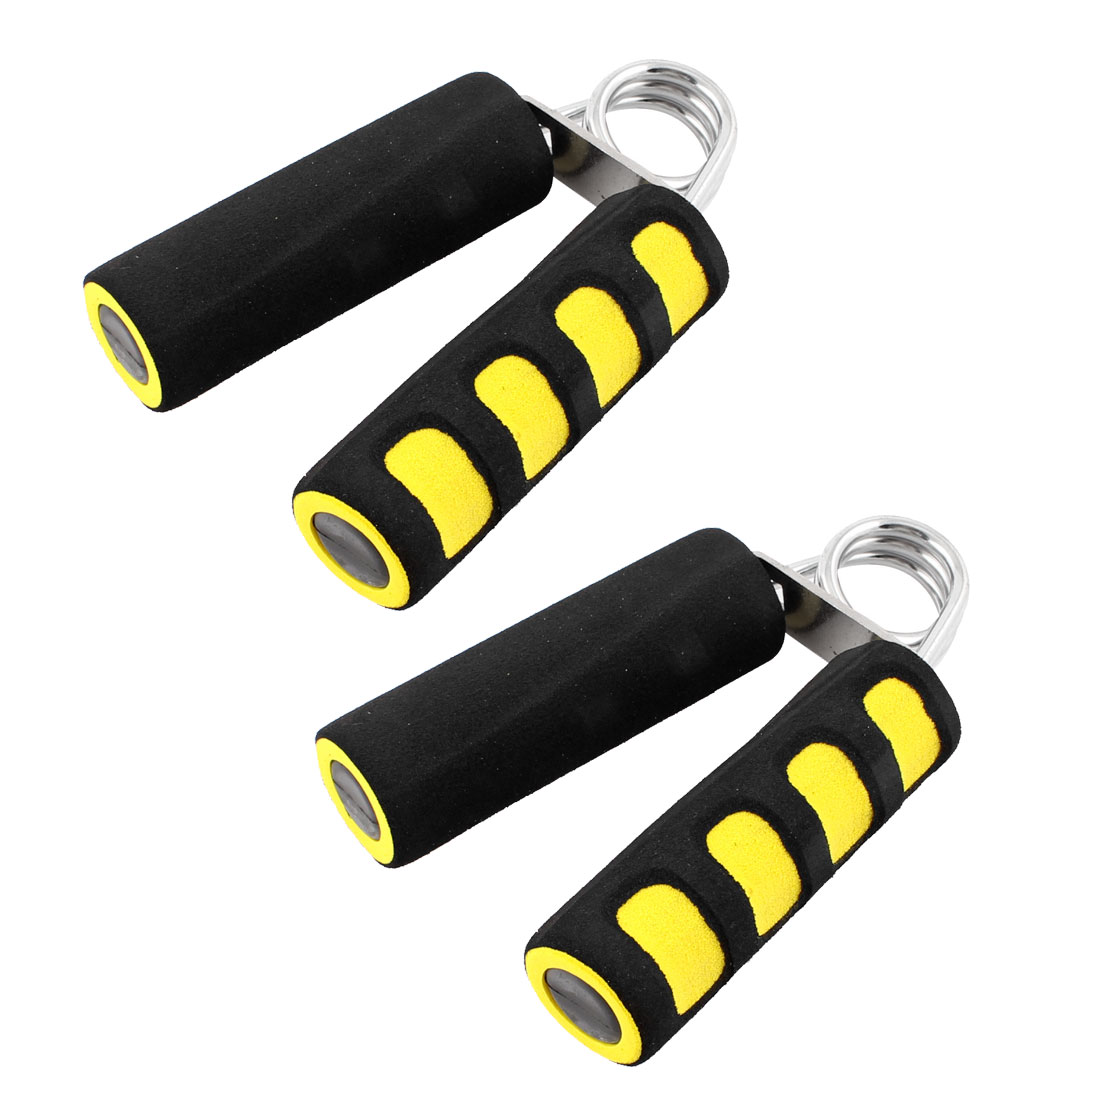 2 Pcs Black Yellow Foam Coated Nonslip Handle Arm Strength Hand Grip Grippers